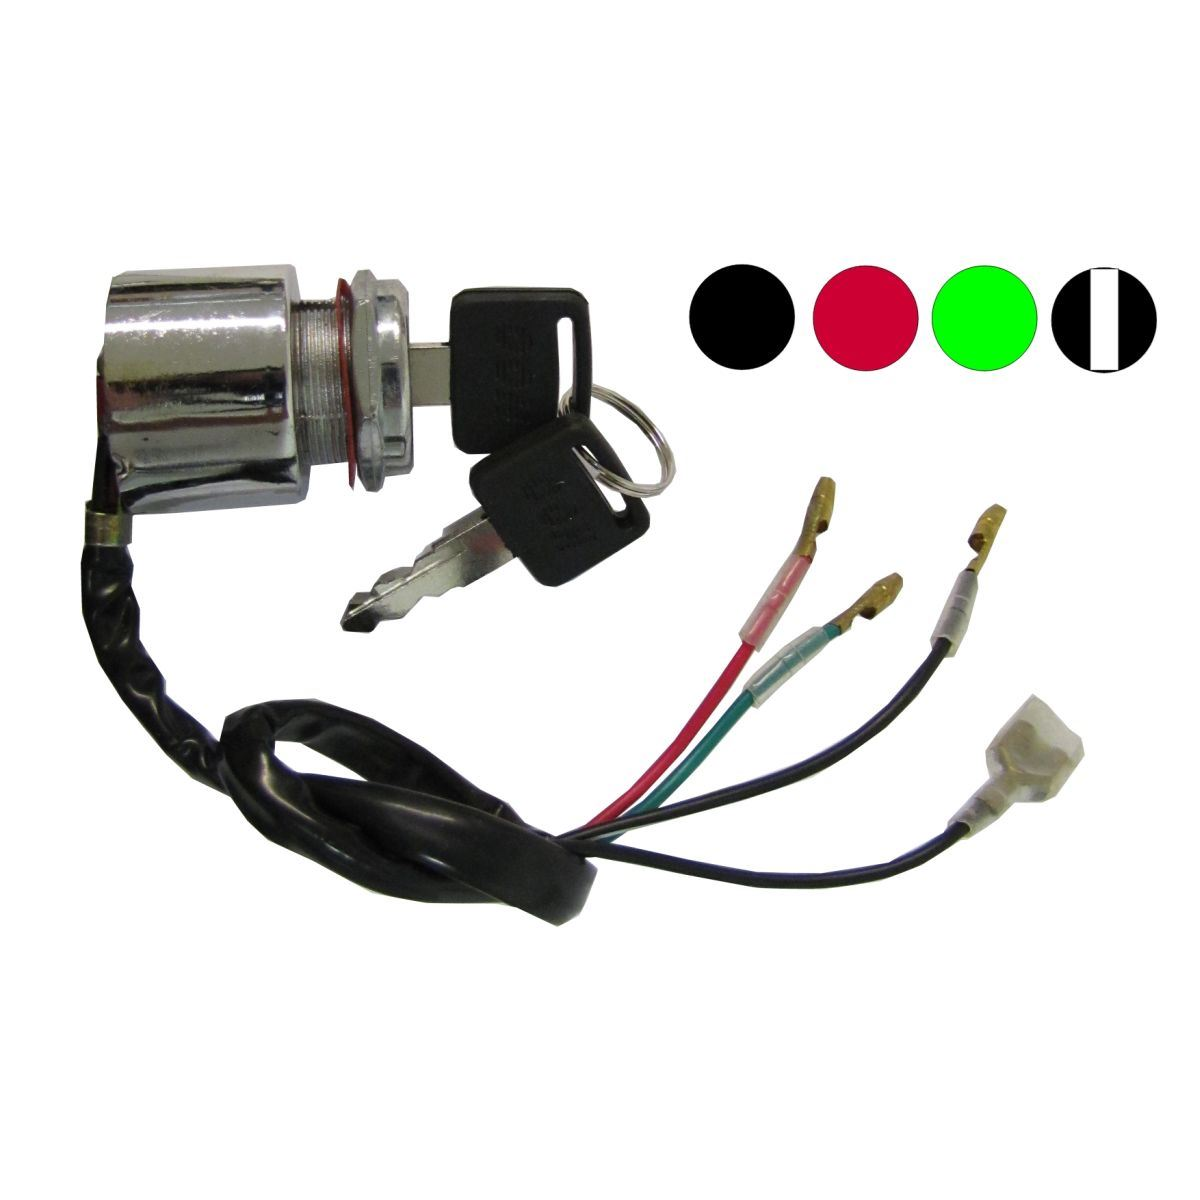 hight resolution of aw motorcycle parts ignition switch universal 4 wire held start switch wiring moped universal starter switch wiring diagram